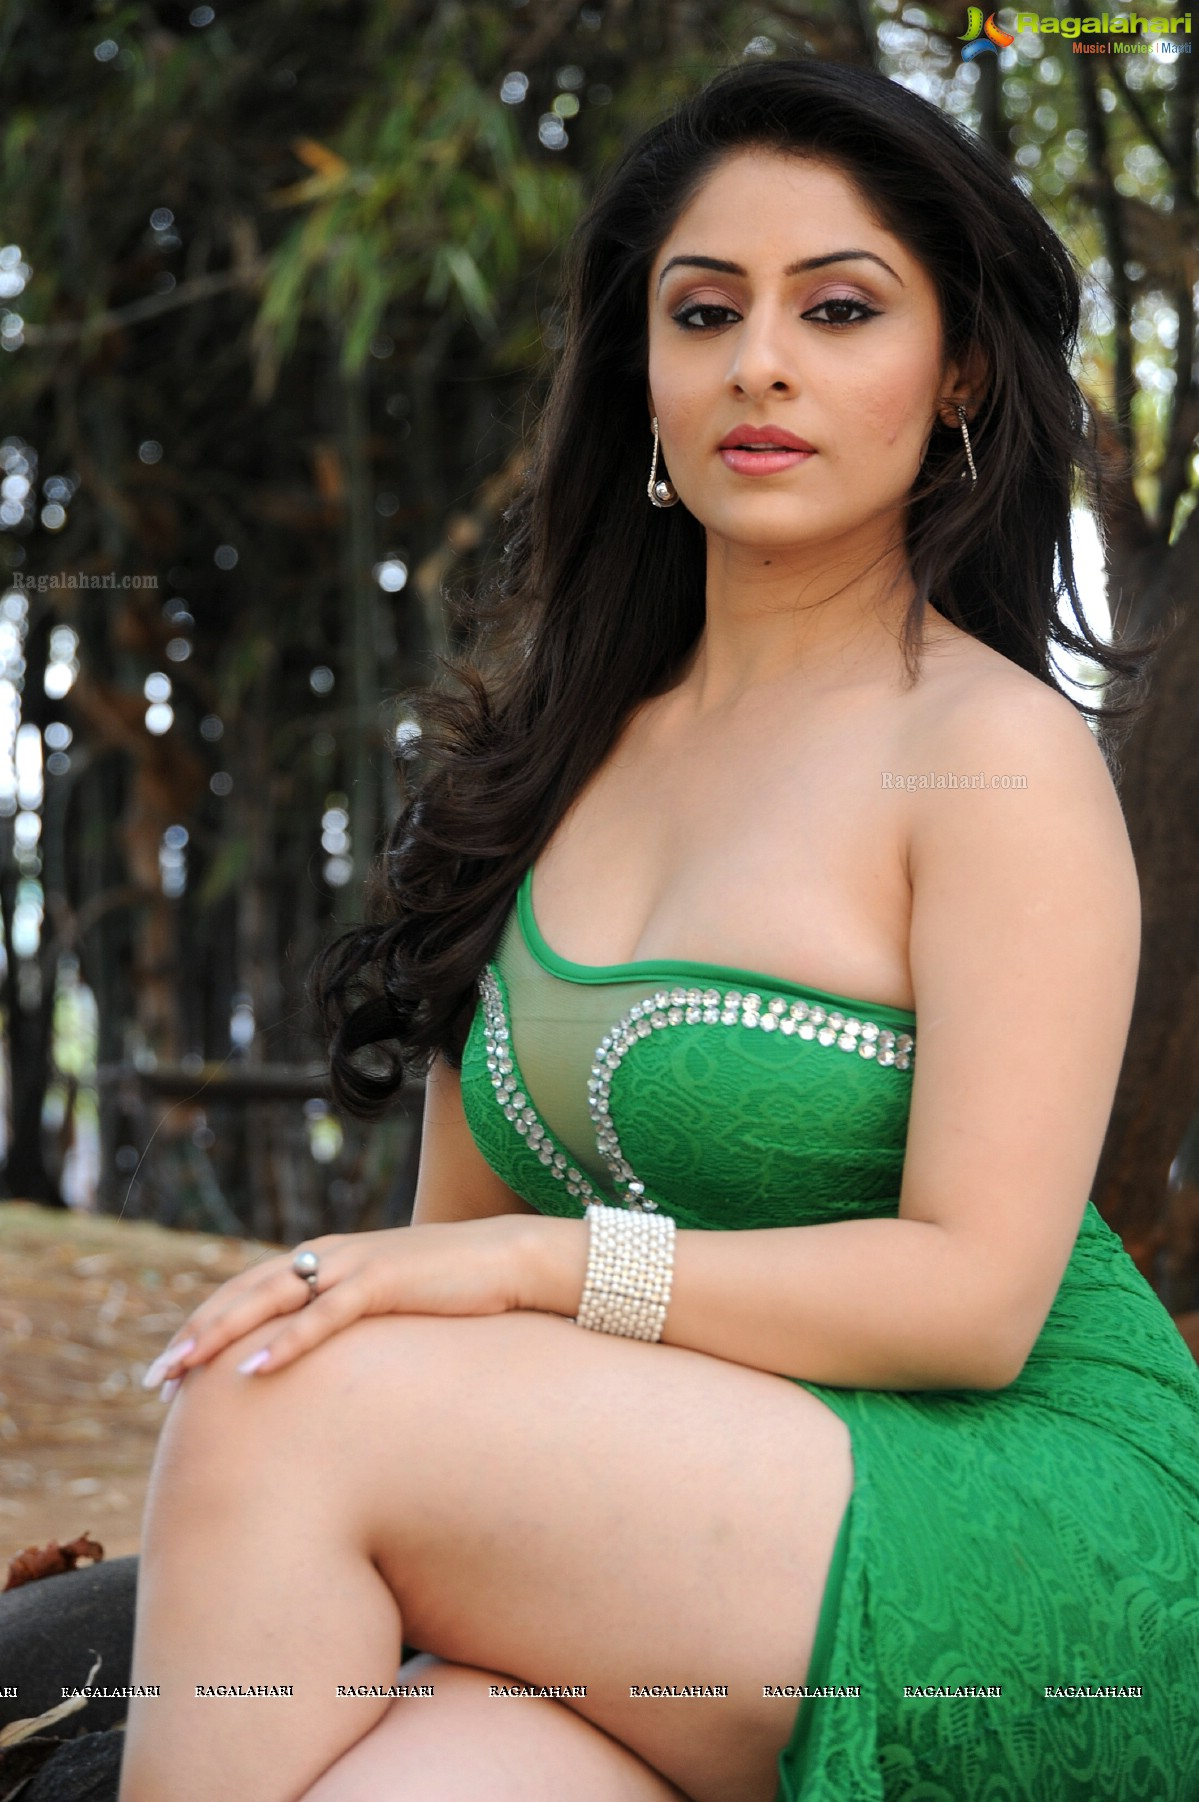 Ankitta Sharma 	2011 Ankitta Sharma 	2011 new picture